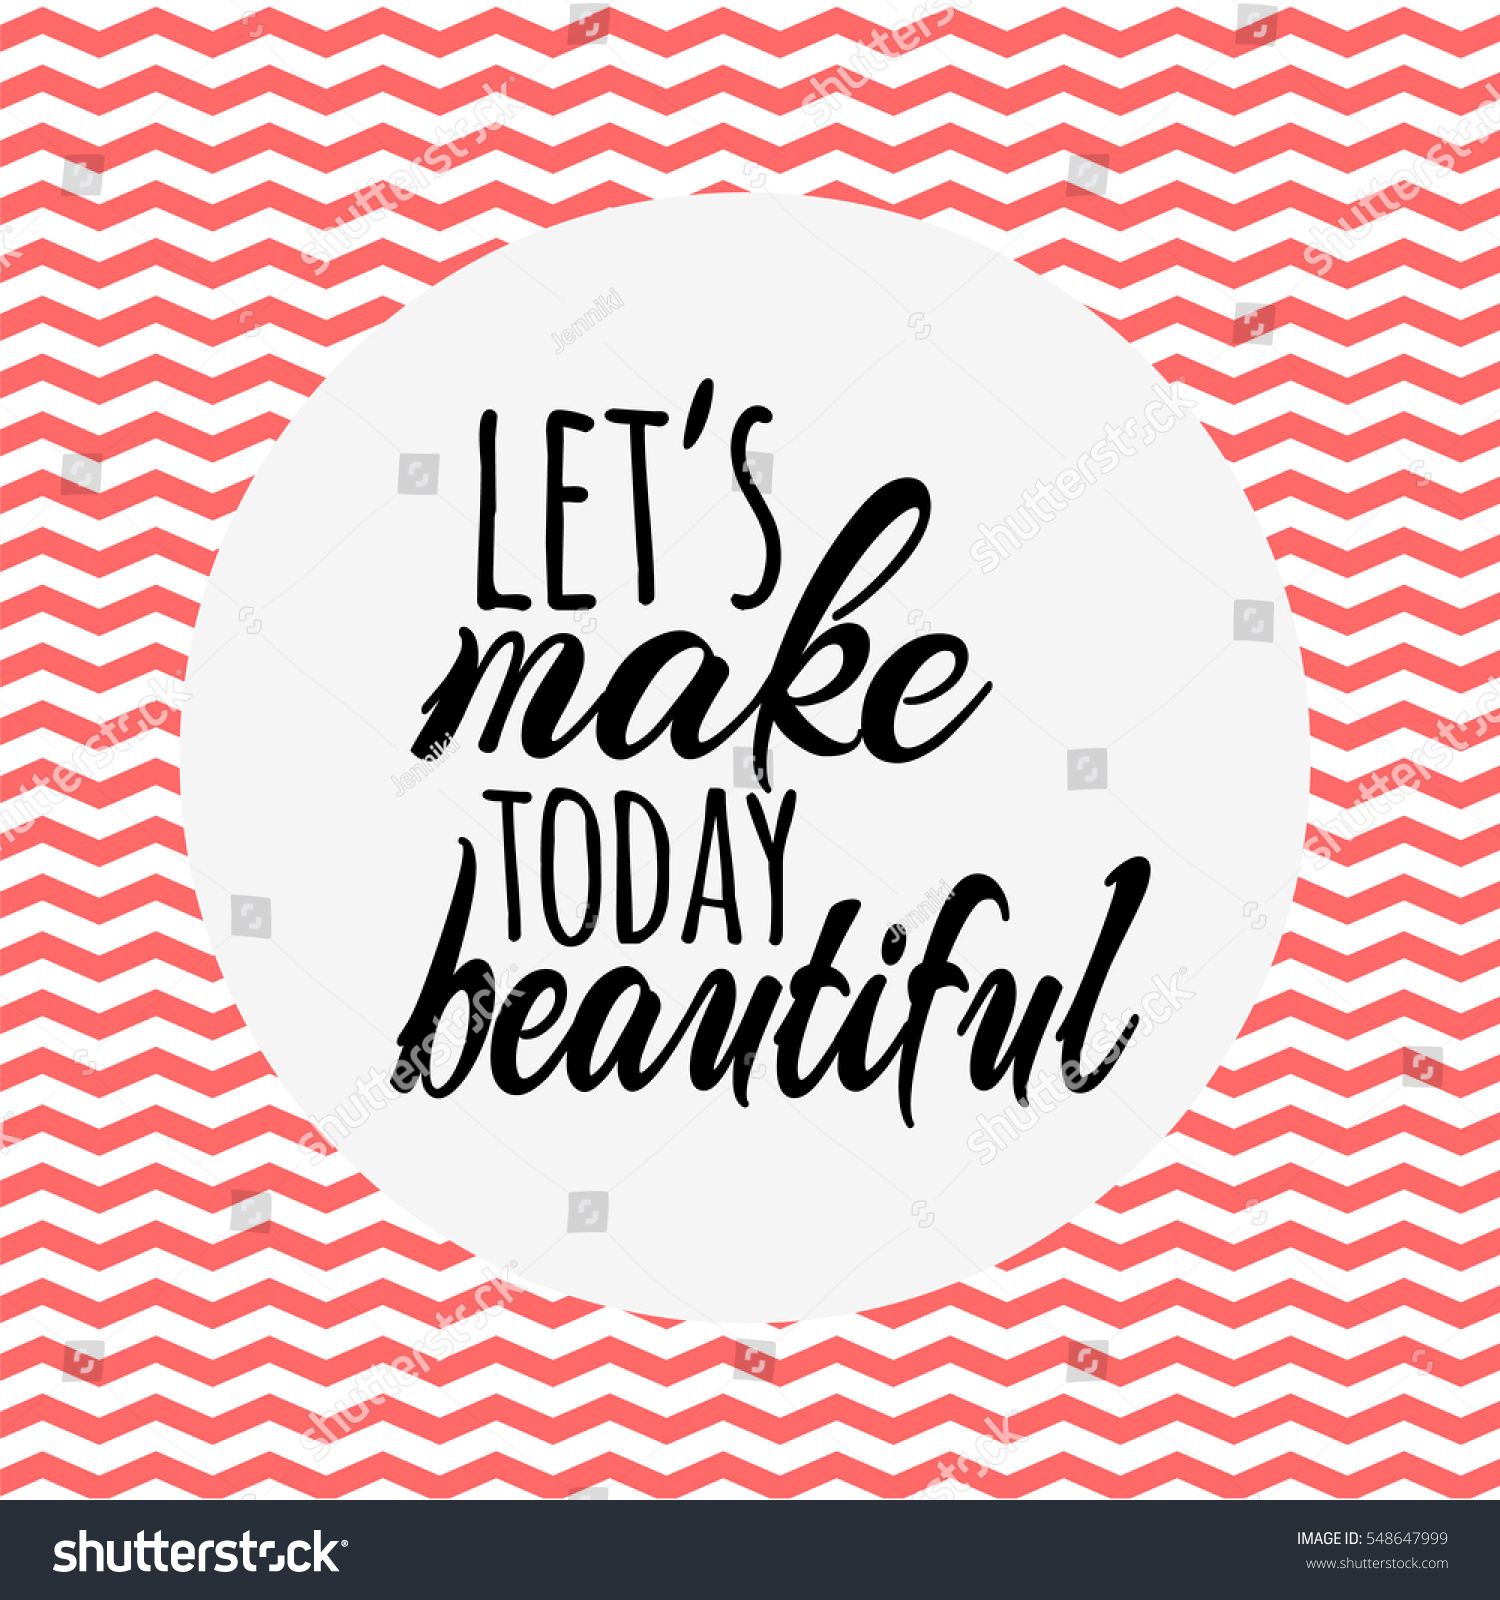 Make Quotes Lets Make Today Beautiful Quotes Card Stock Vector 548647999